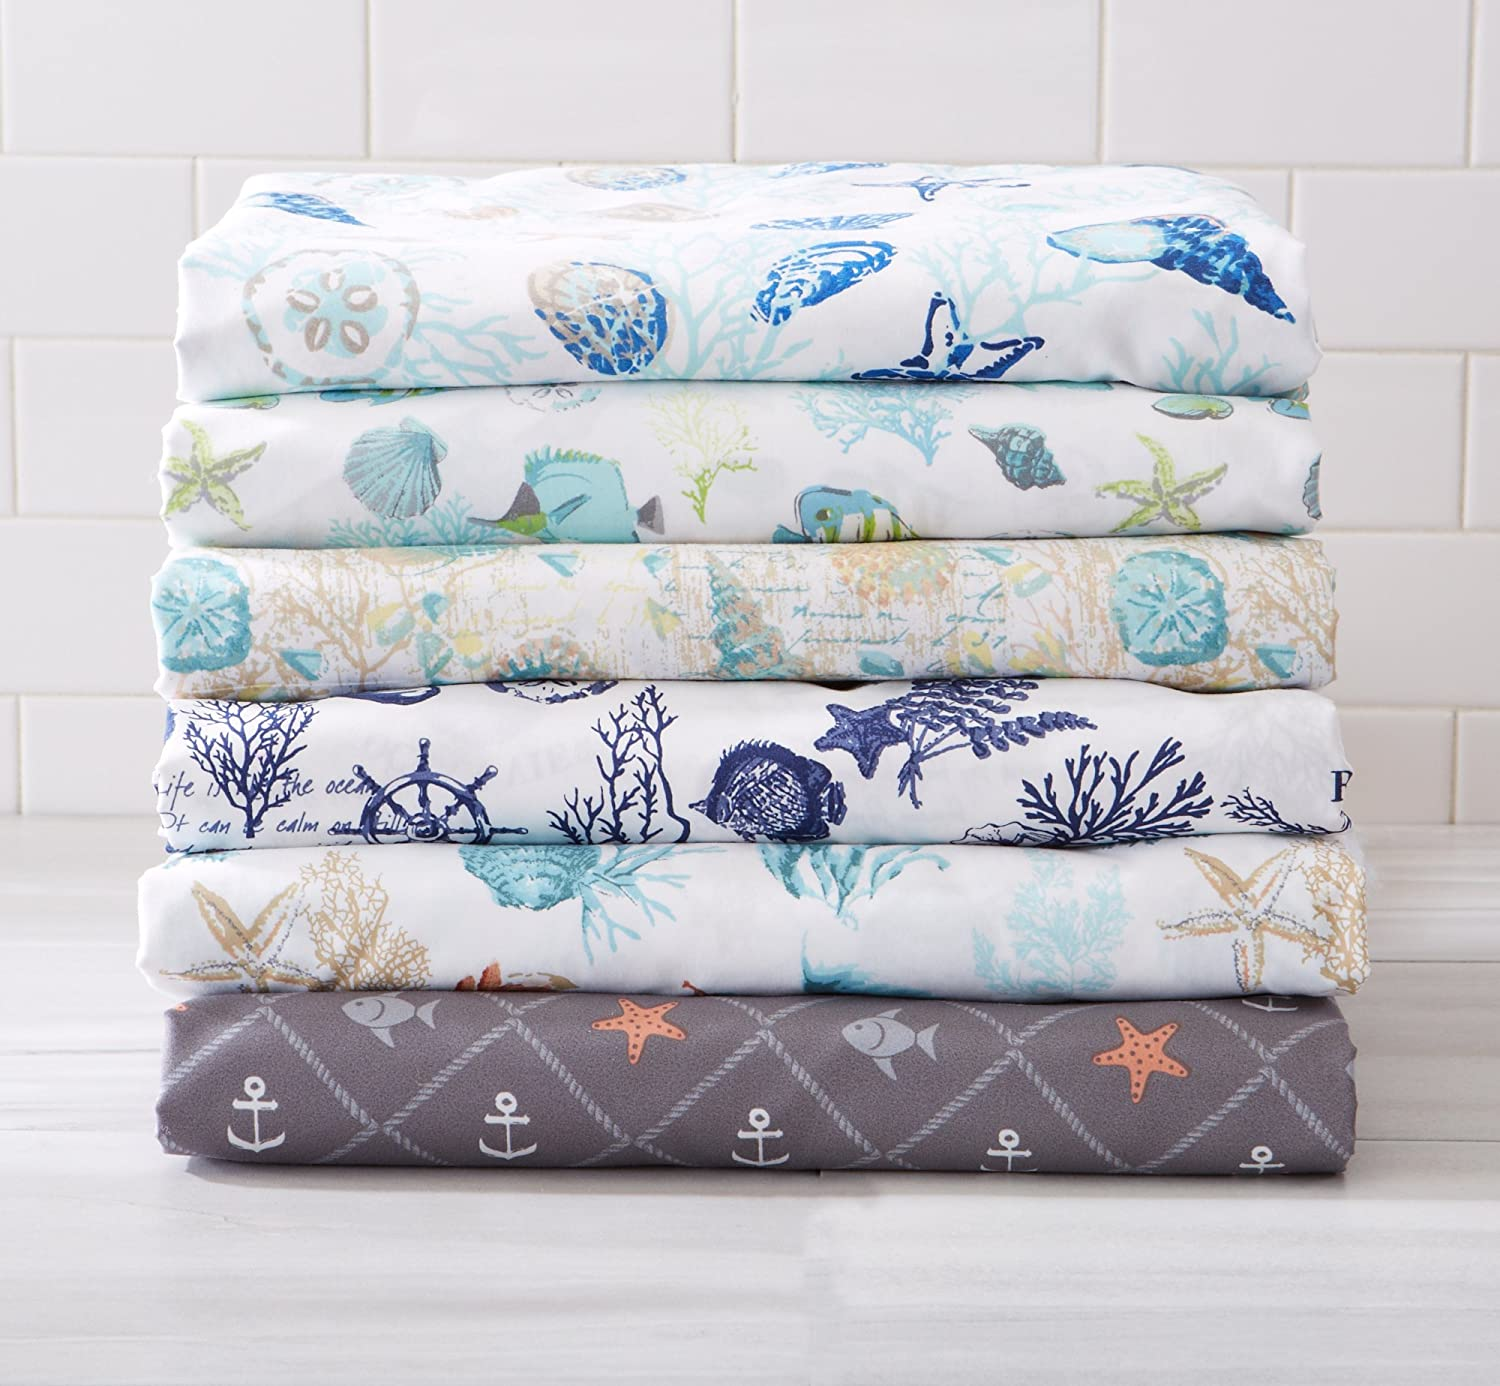 Ultra-Soft Double-Brushed Coastal Printed Microfiber Sheet Set